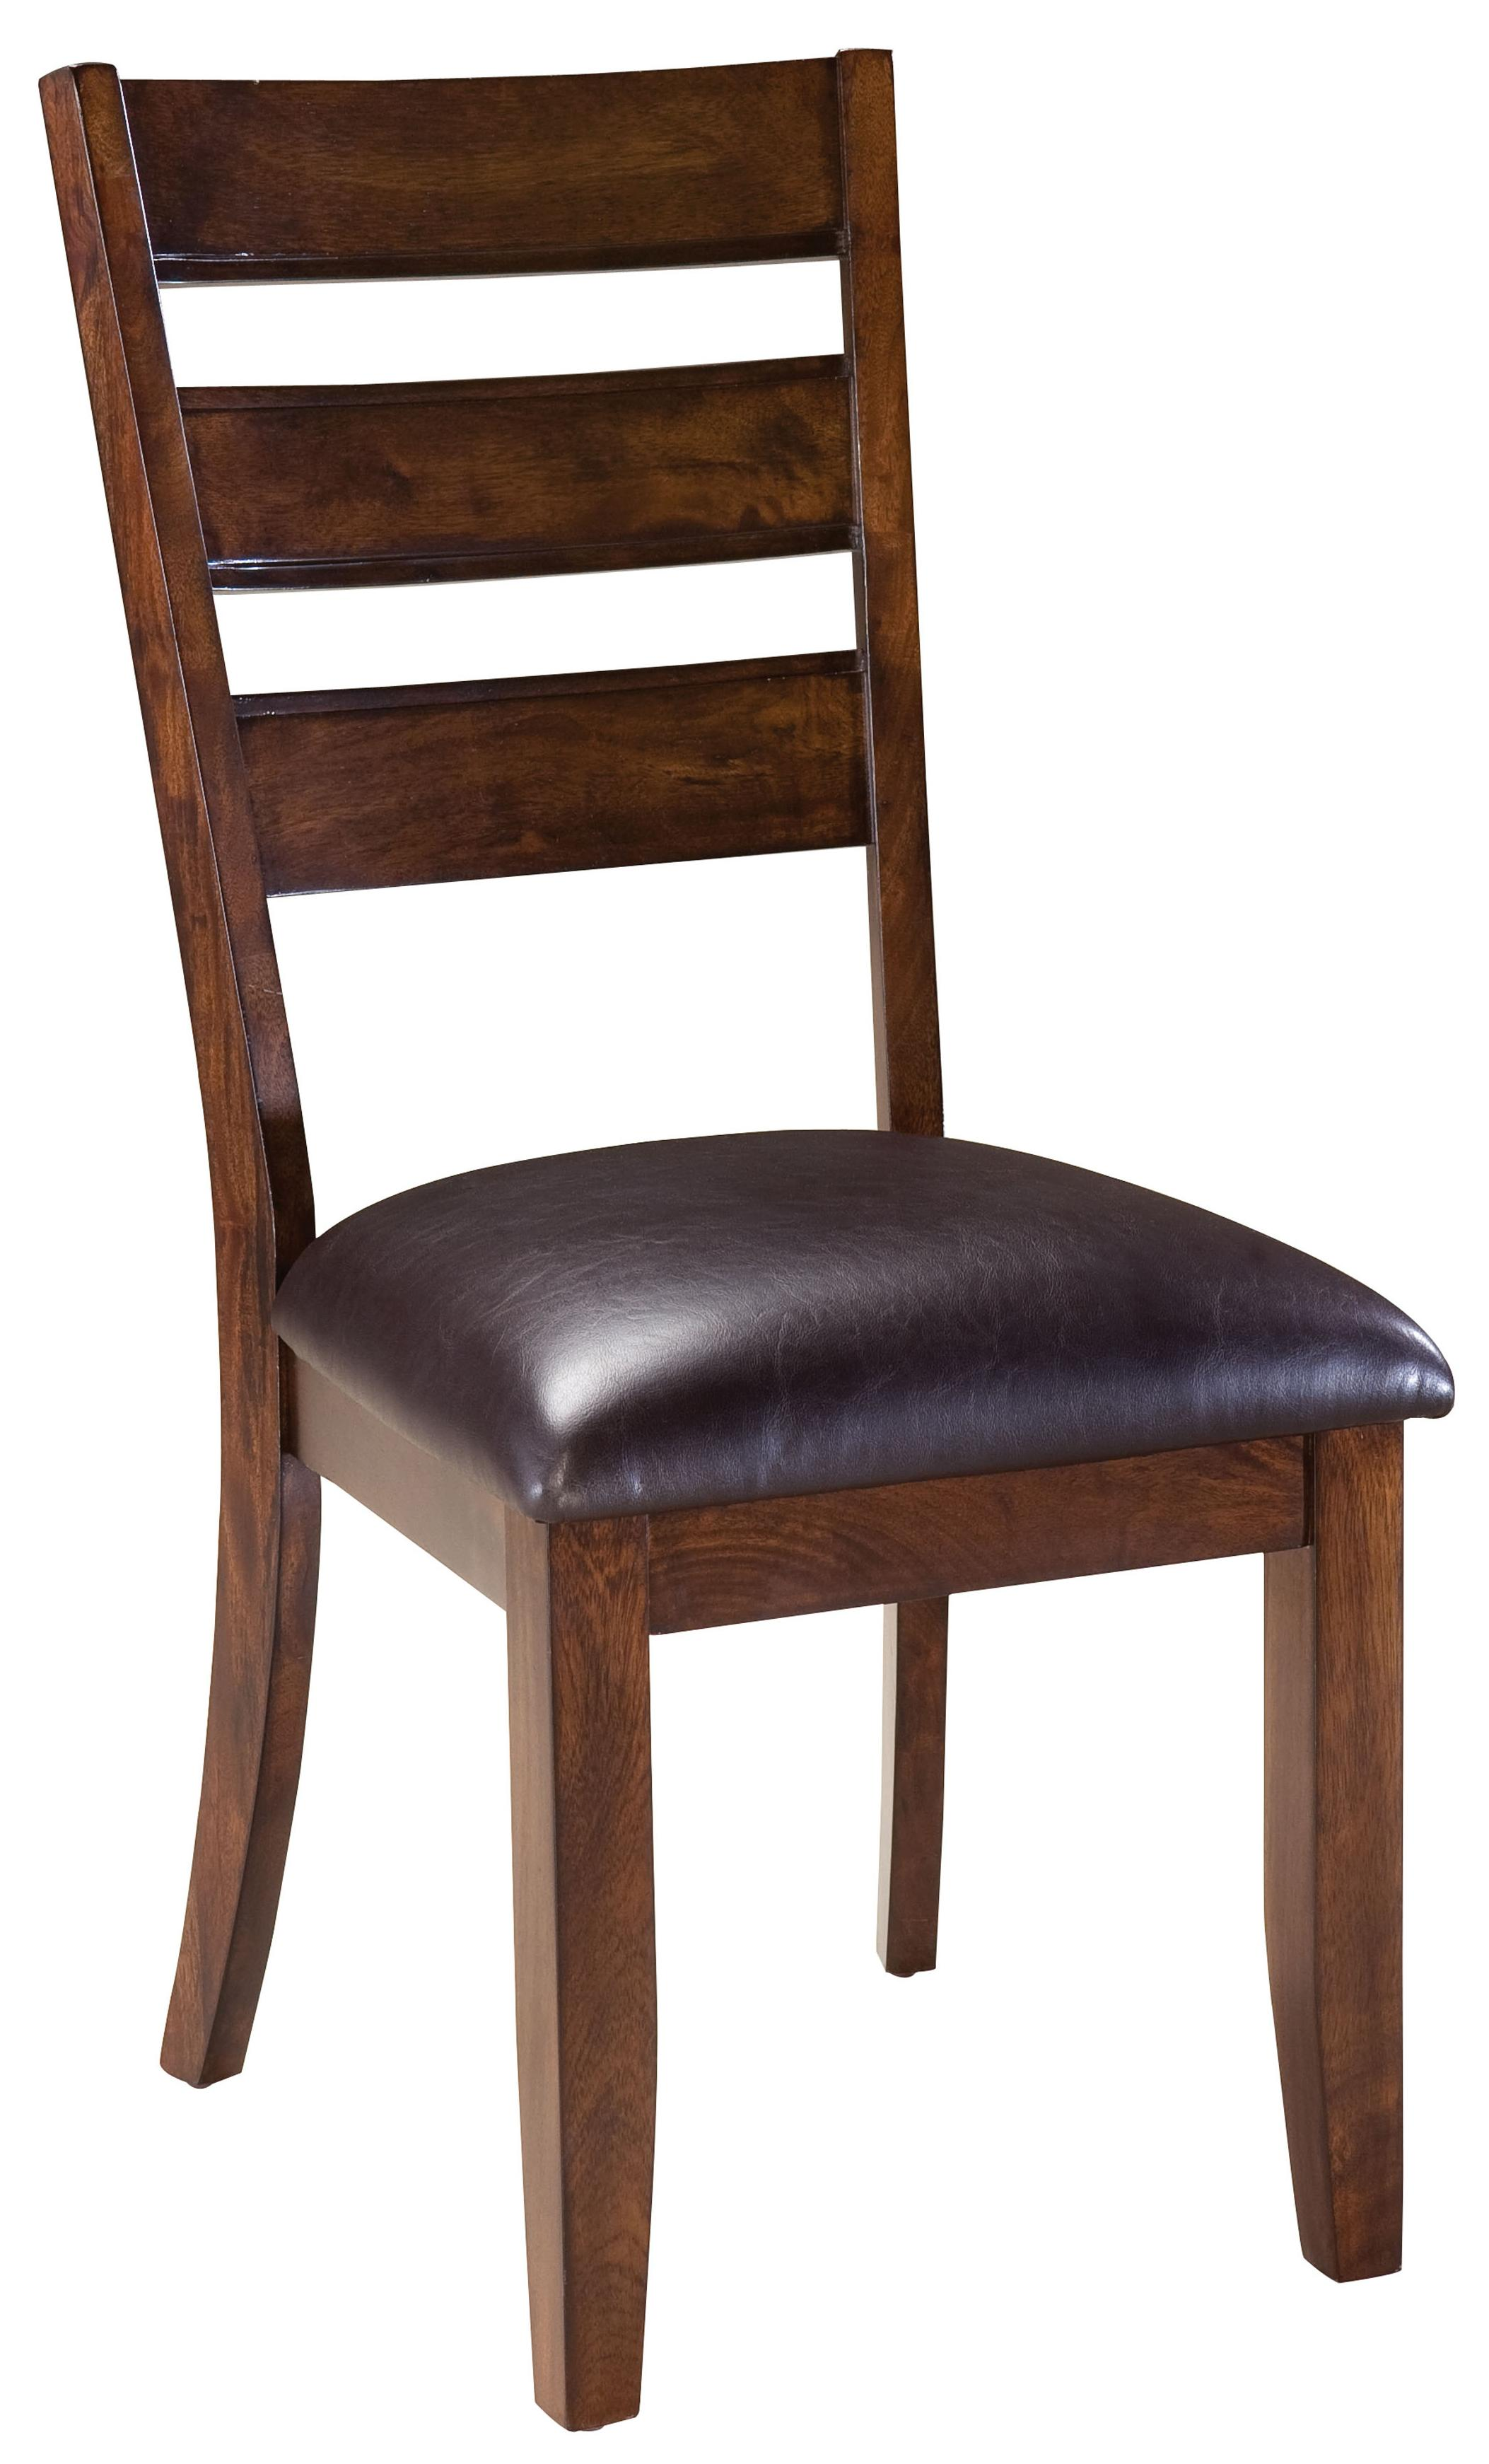 Standard Furniture Abaco Dining Side Chair - Item Number: 18924